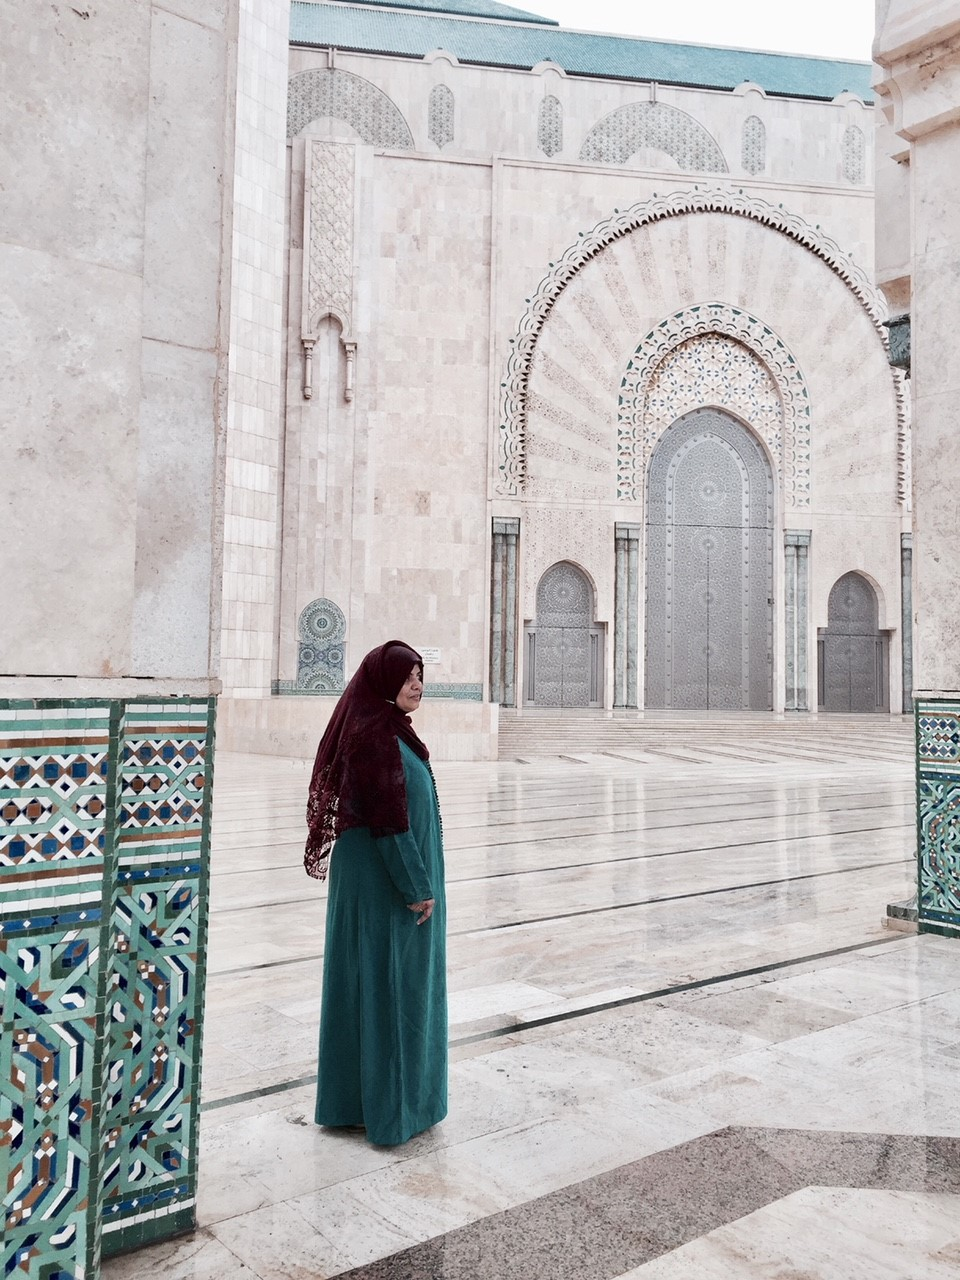 HASSAN II MOSQUE-CASABLANCA  - Truly a masterpiece! The Hassan II Mosque is the largest mosque in Morocco and the 13th largest in the world. You will be in awe as soon as you step into the grounds!